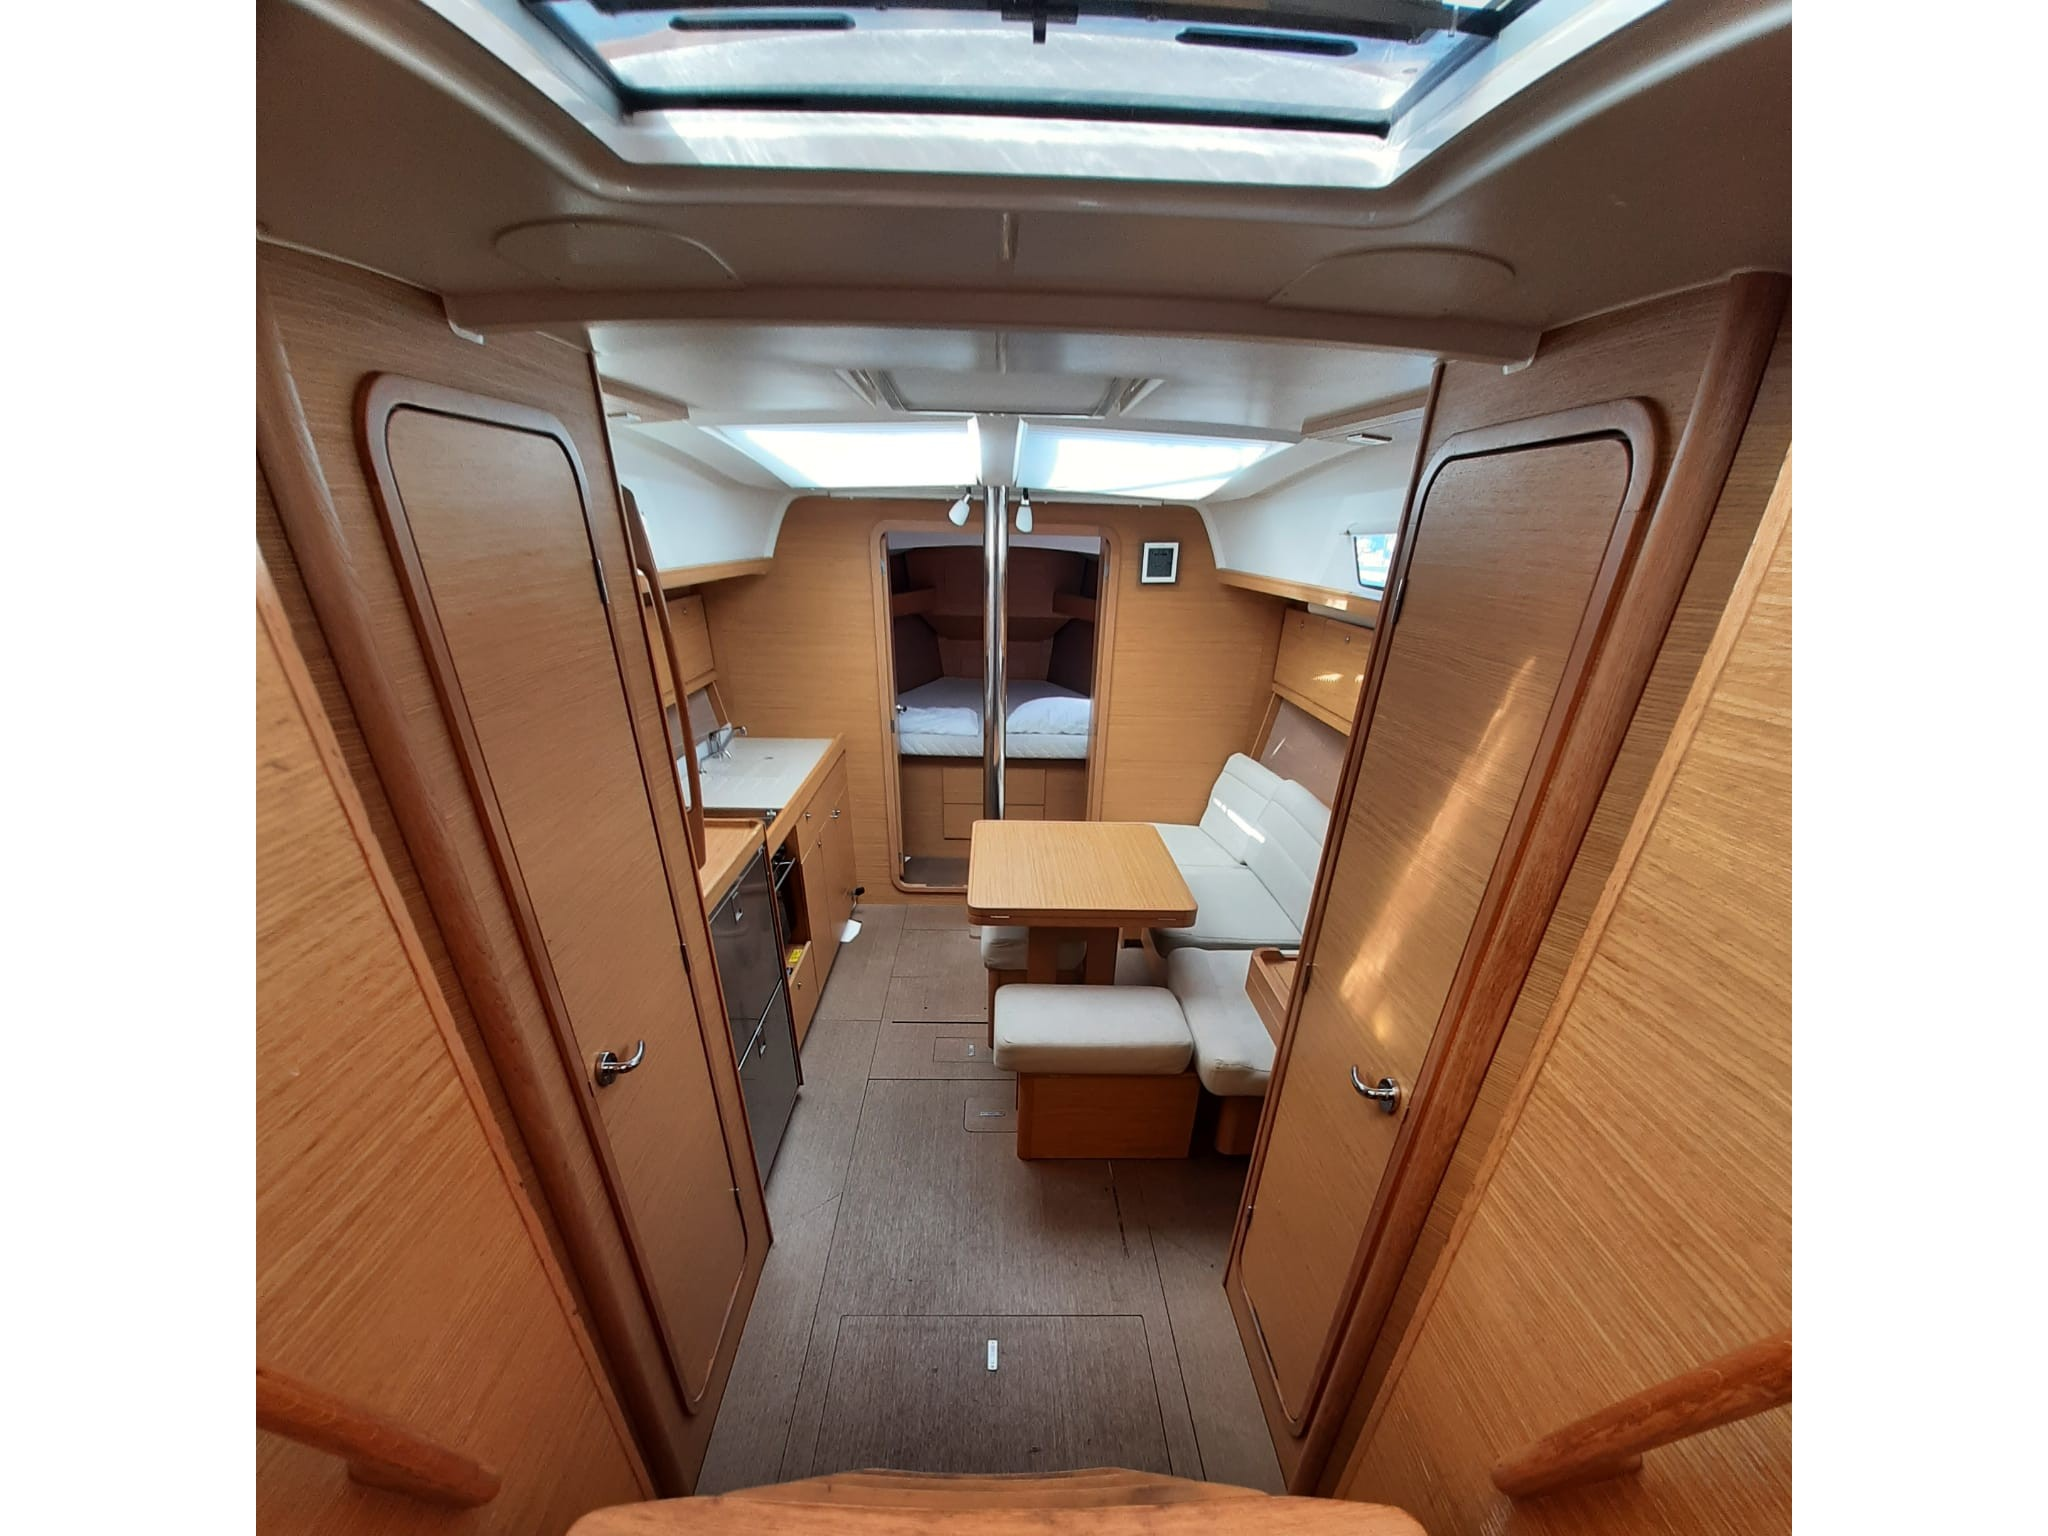 Dufour 382 Grand Large Notus 2016 (Notus) Interior image - 2